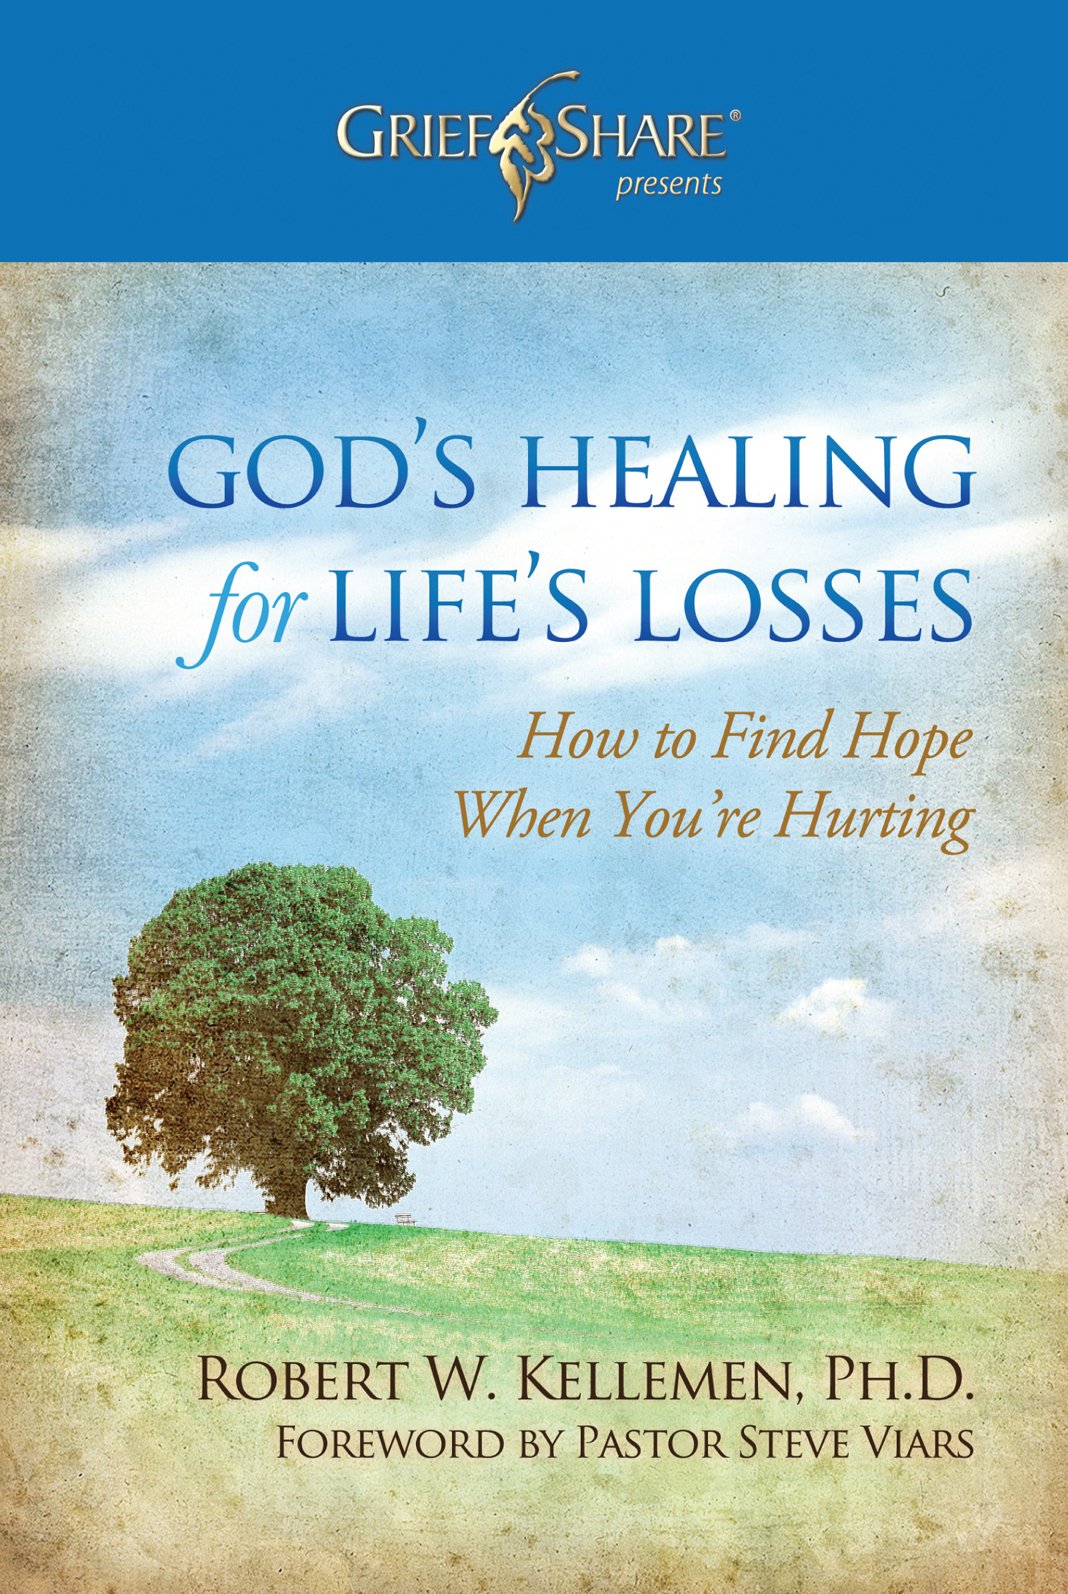 God Quote The Top Three Dozen Quotes On God's Healing For Life's Losses